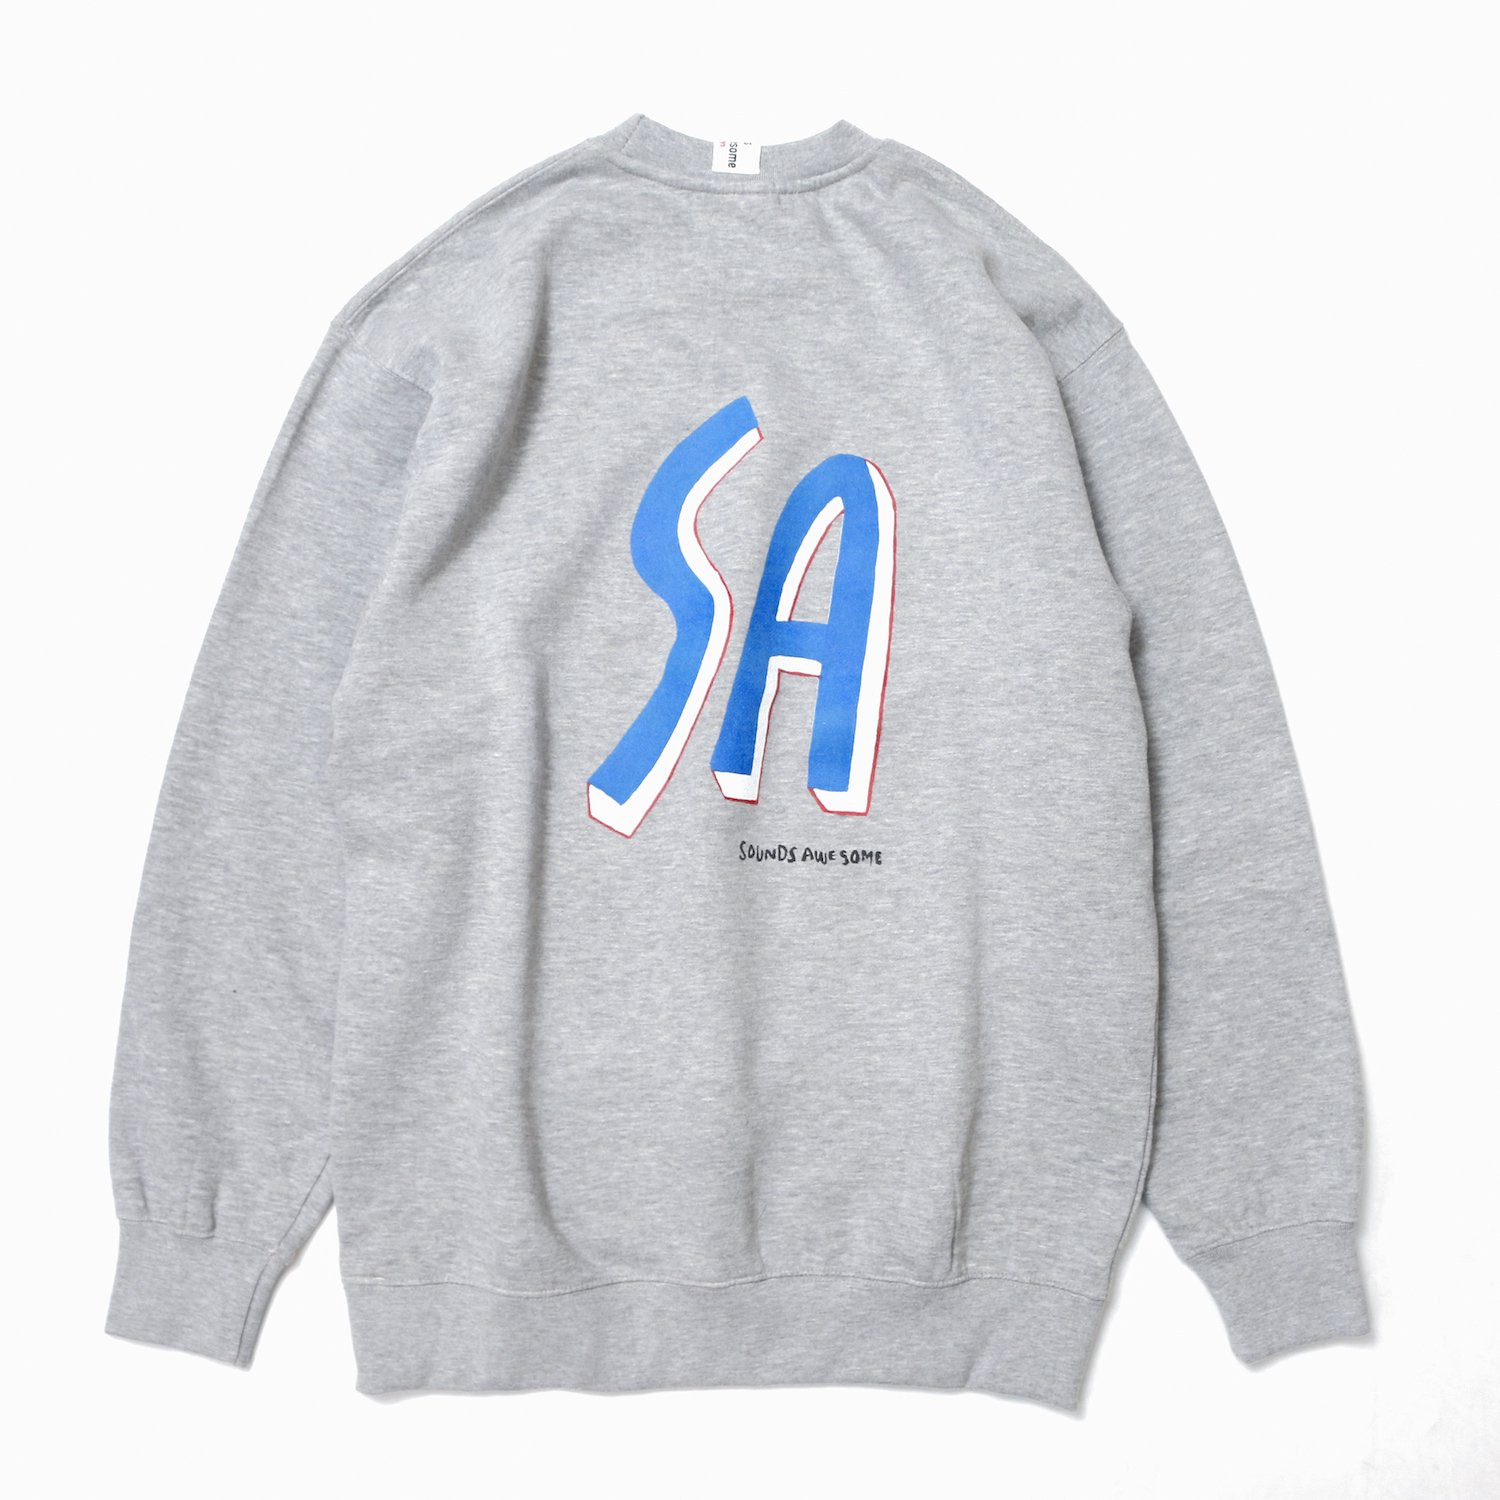 <img class='new_mark_img1' src='https://img.shop-pro.jp/img/new/icons8.gif' style='border:none;display:inline;margin:0px;padding:0px;width:auto;' />SOUNDS AWESOME / SA Logo printed Sweat